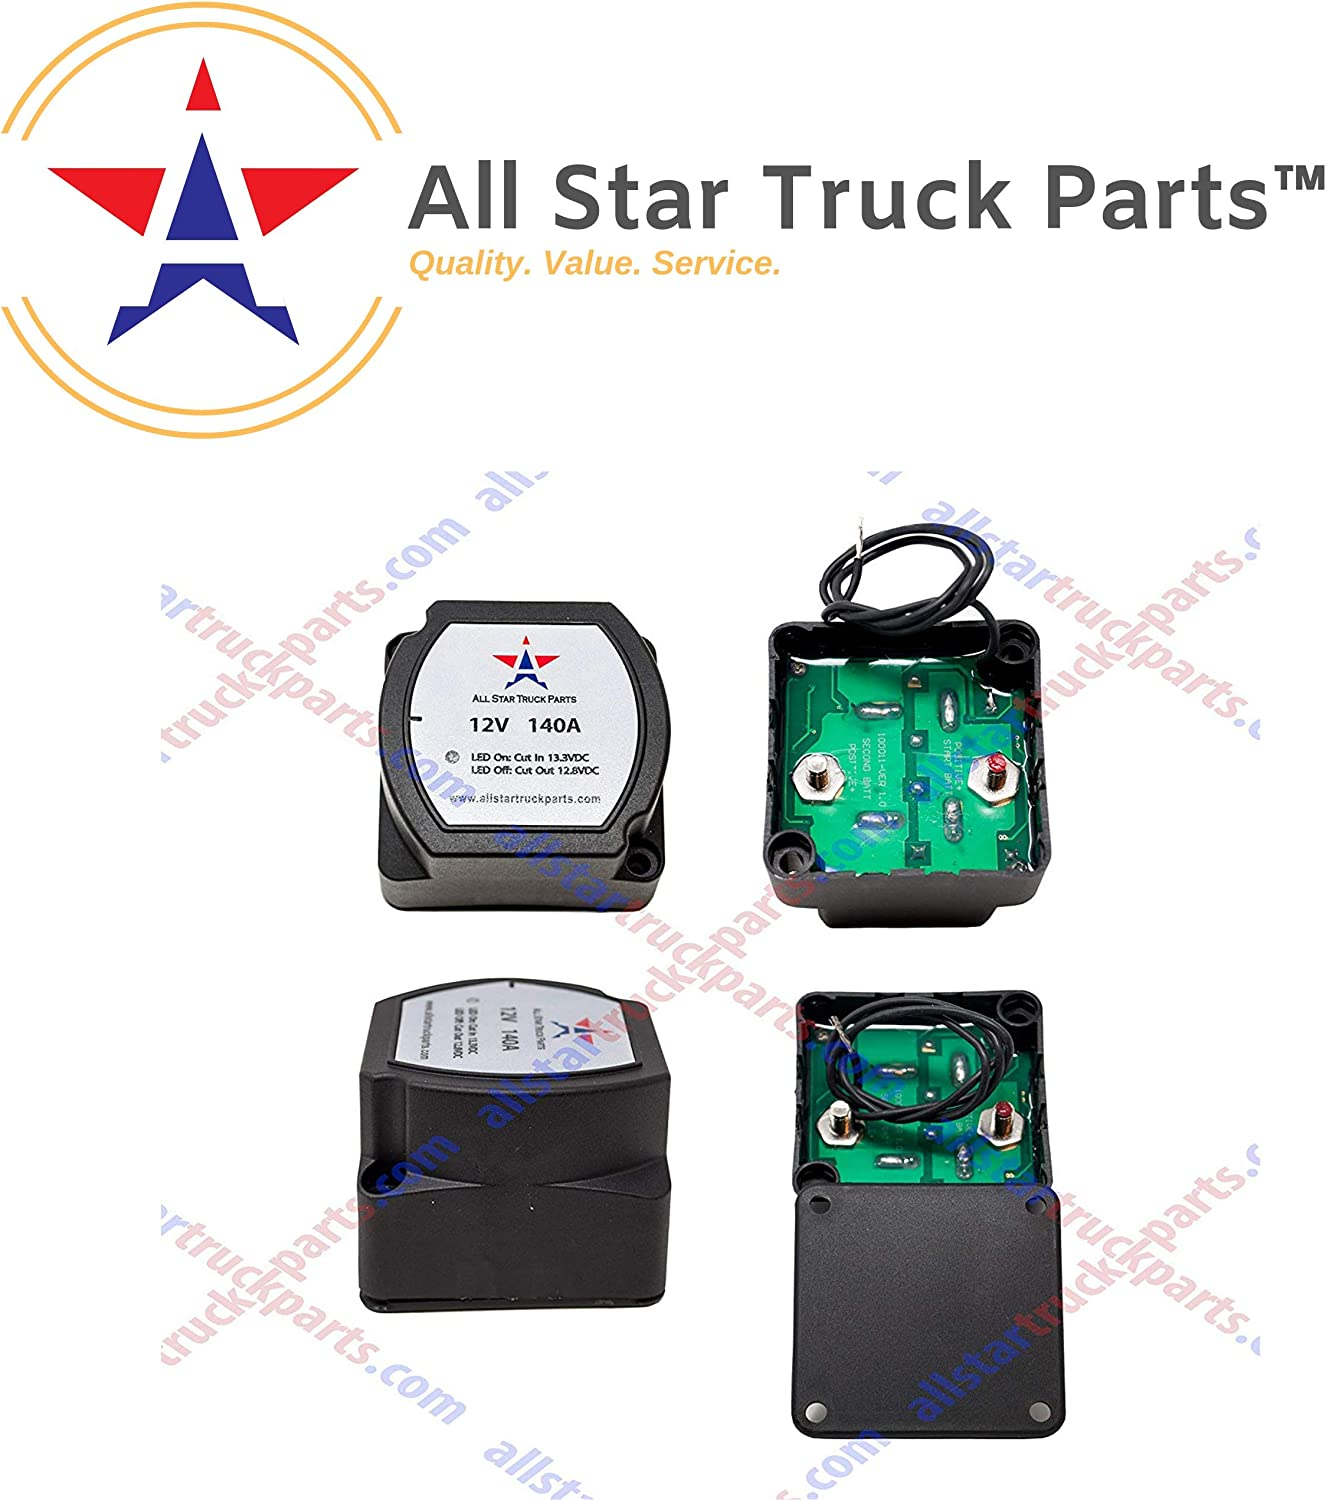 [ALL STAR TRUCK PARTS] 12V 140 Amp Dual Battery Smart Isolator - VSR - Voltage Sensitive Relay Specially Designed for ATV, UTV, Boats, RV's, Campers 5th Wheels Off Road Vehicles Rhino Polar